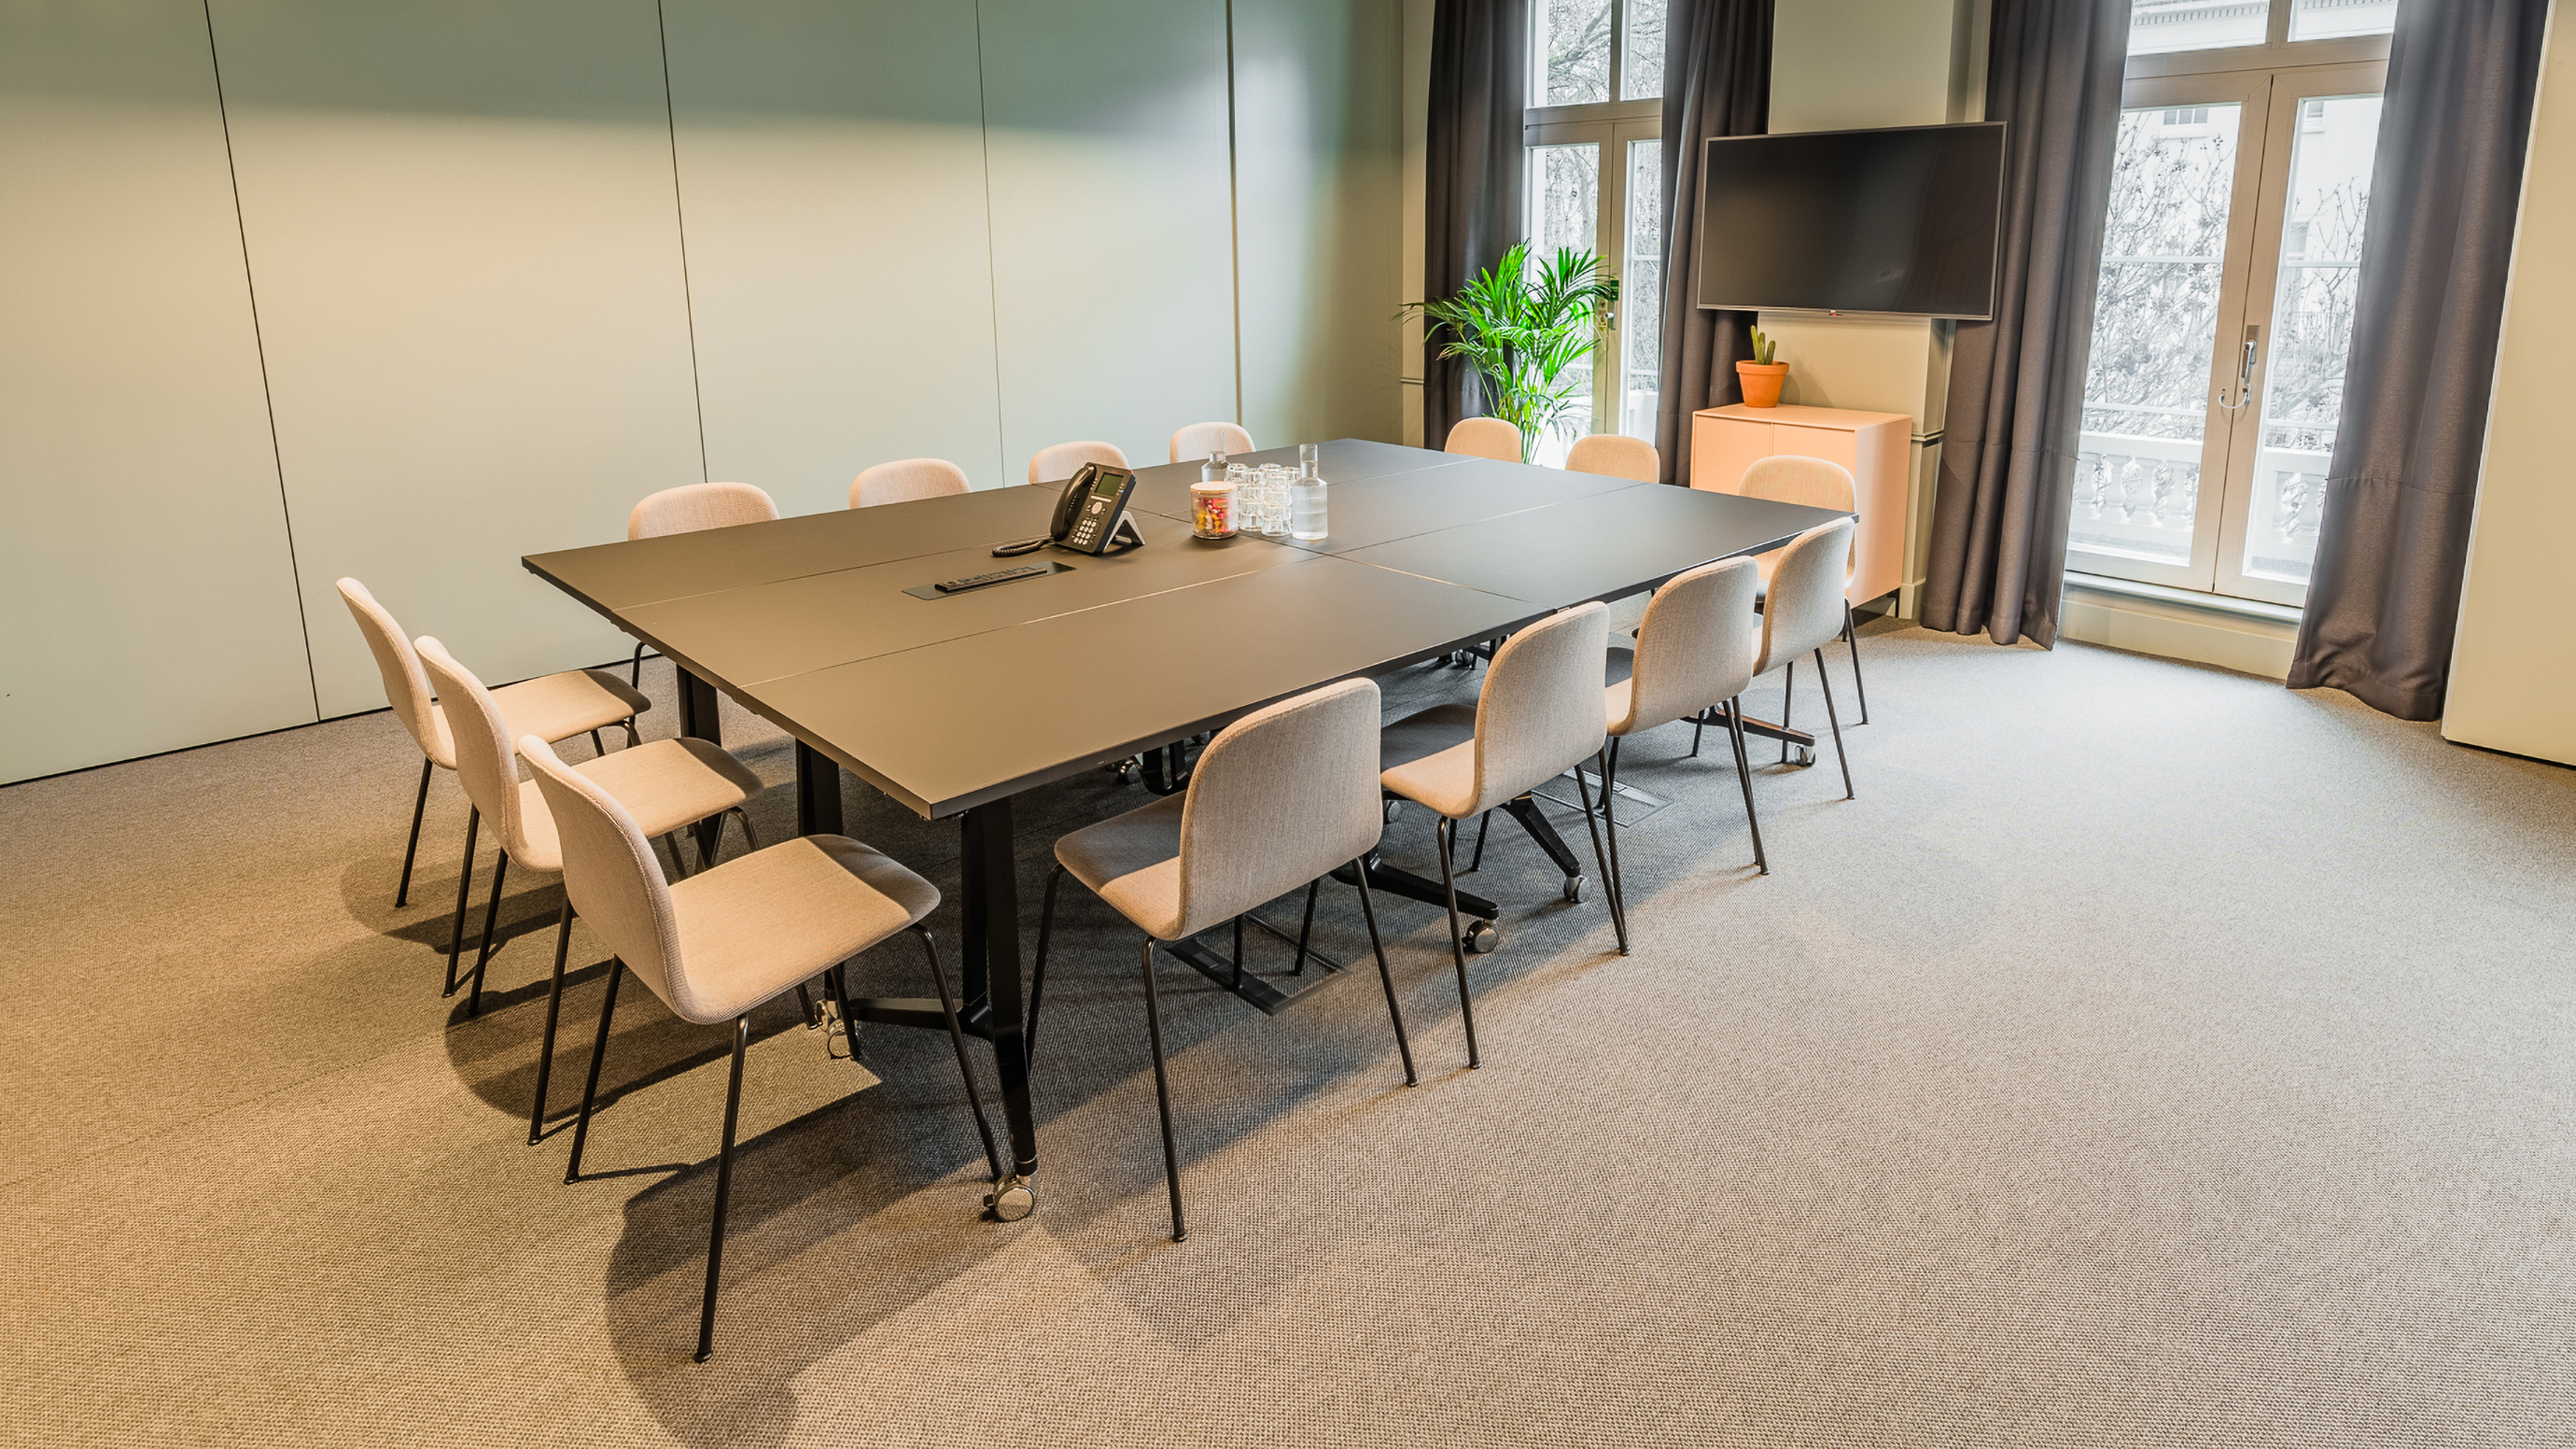 Medium meeting room with dark table and pale chairs and carpet at TOG building Thomas House London